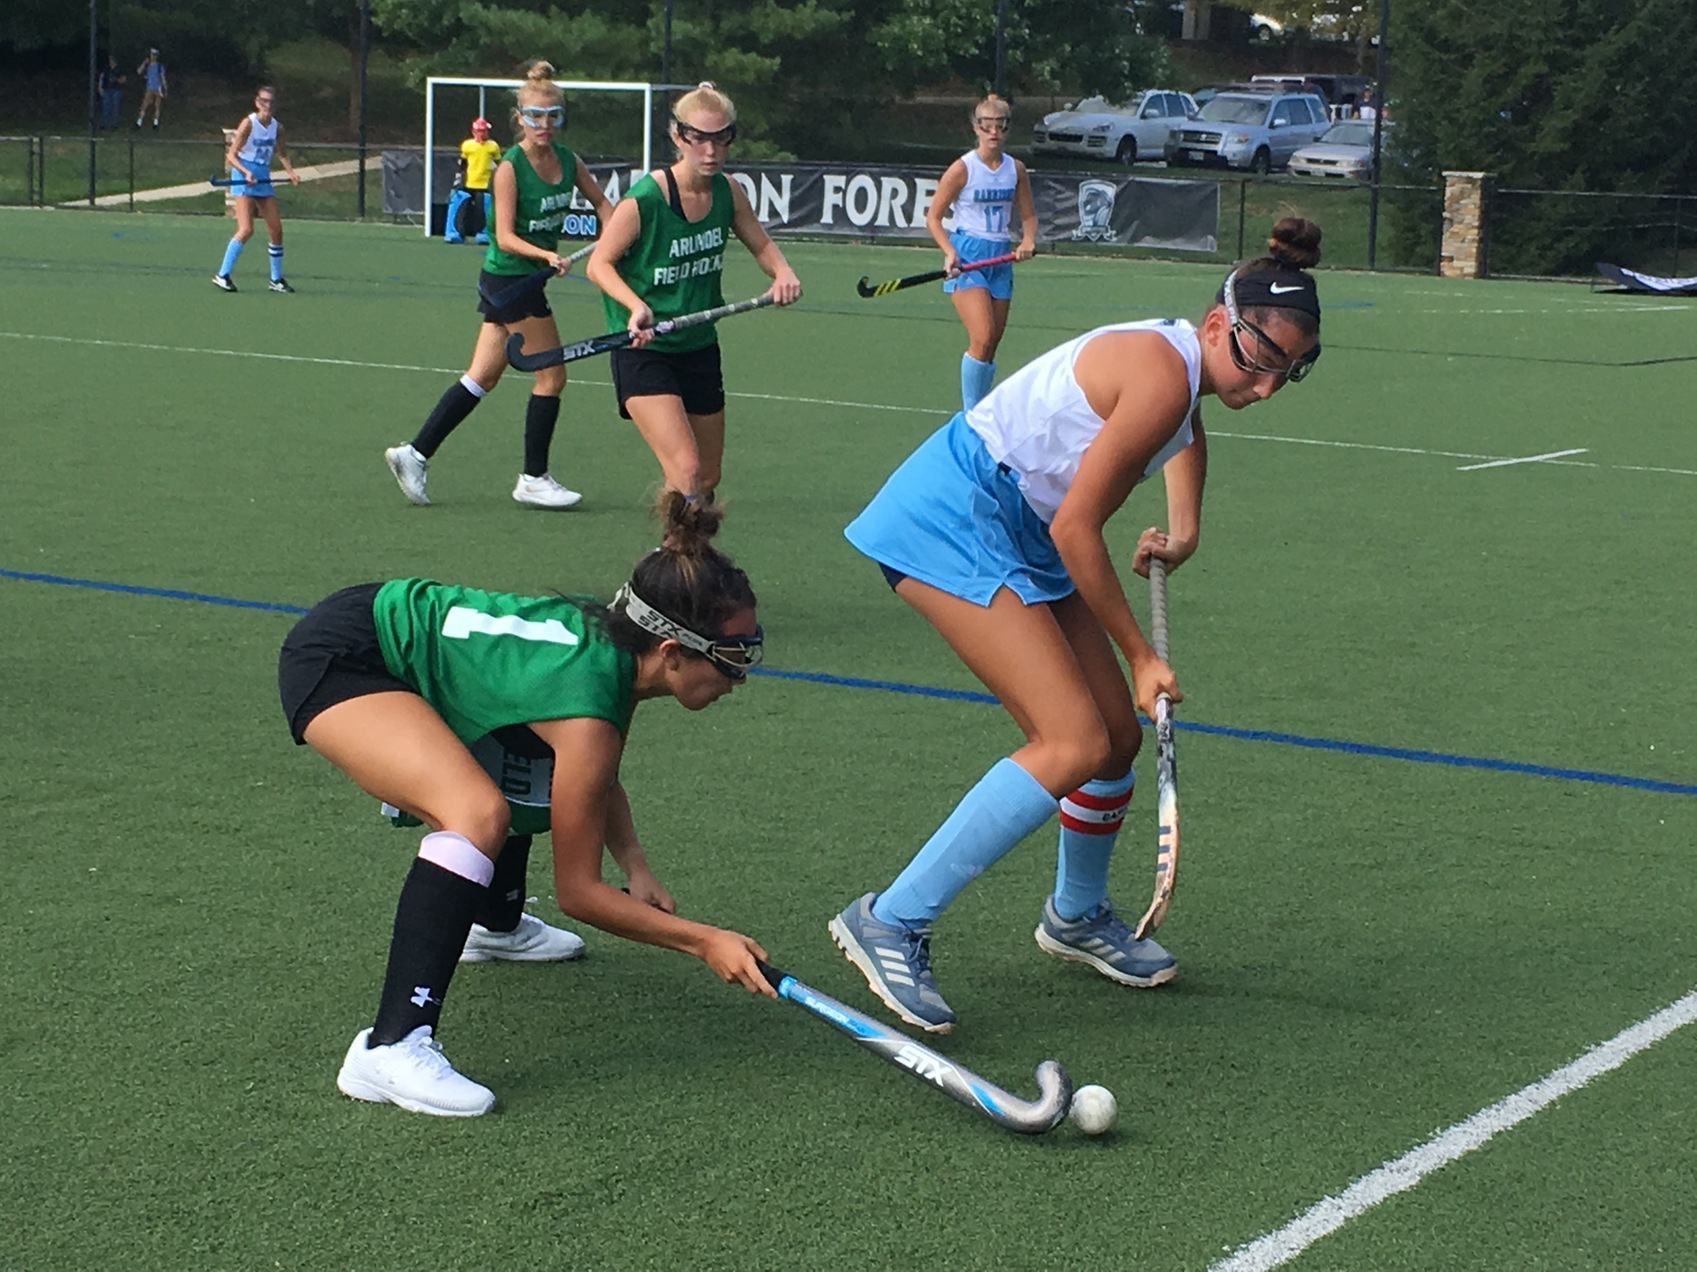 Garrison Forest rallies past Arundel in early-season field hockey showdown